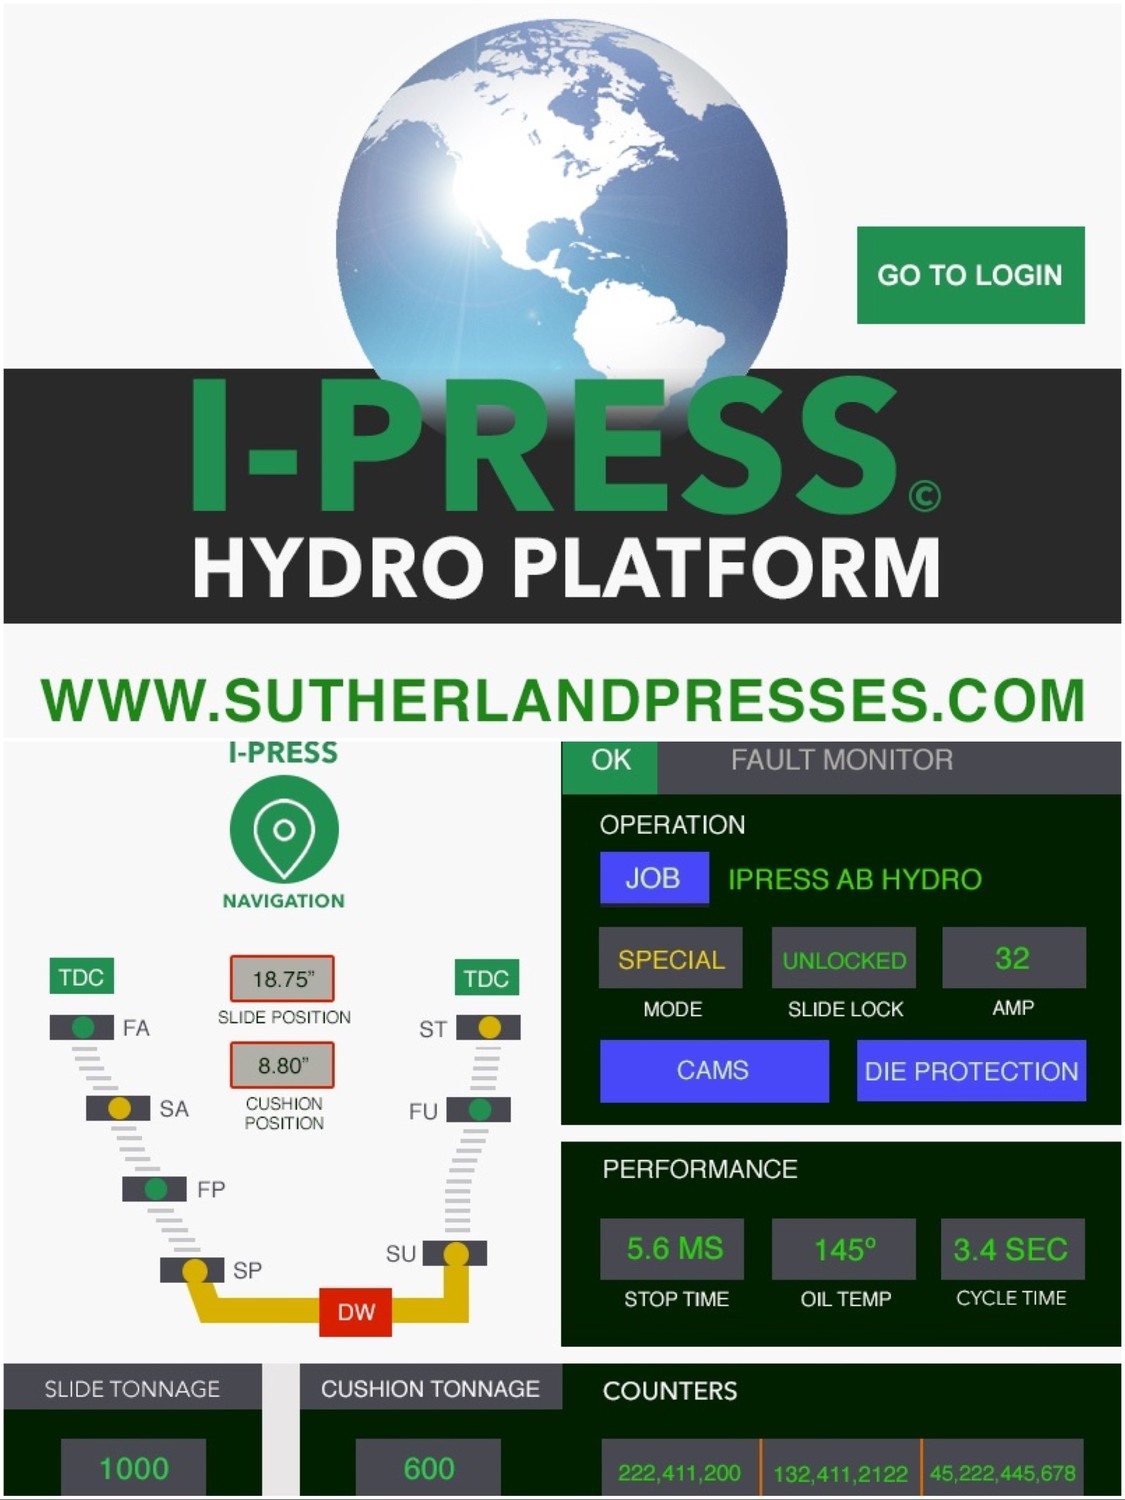 I-PRESS Platform for Servo Hydraulic Presses